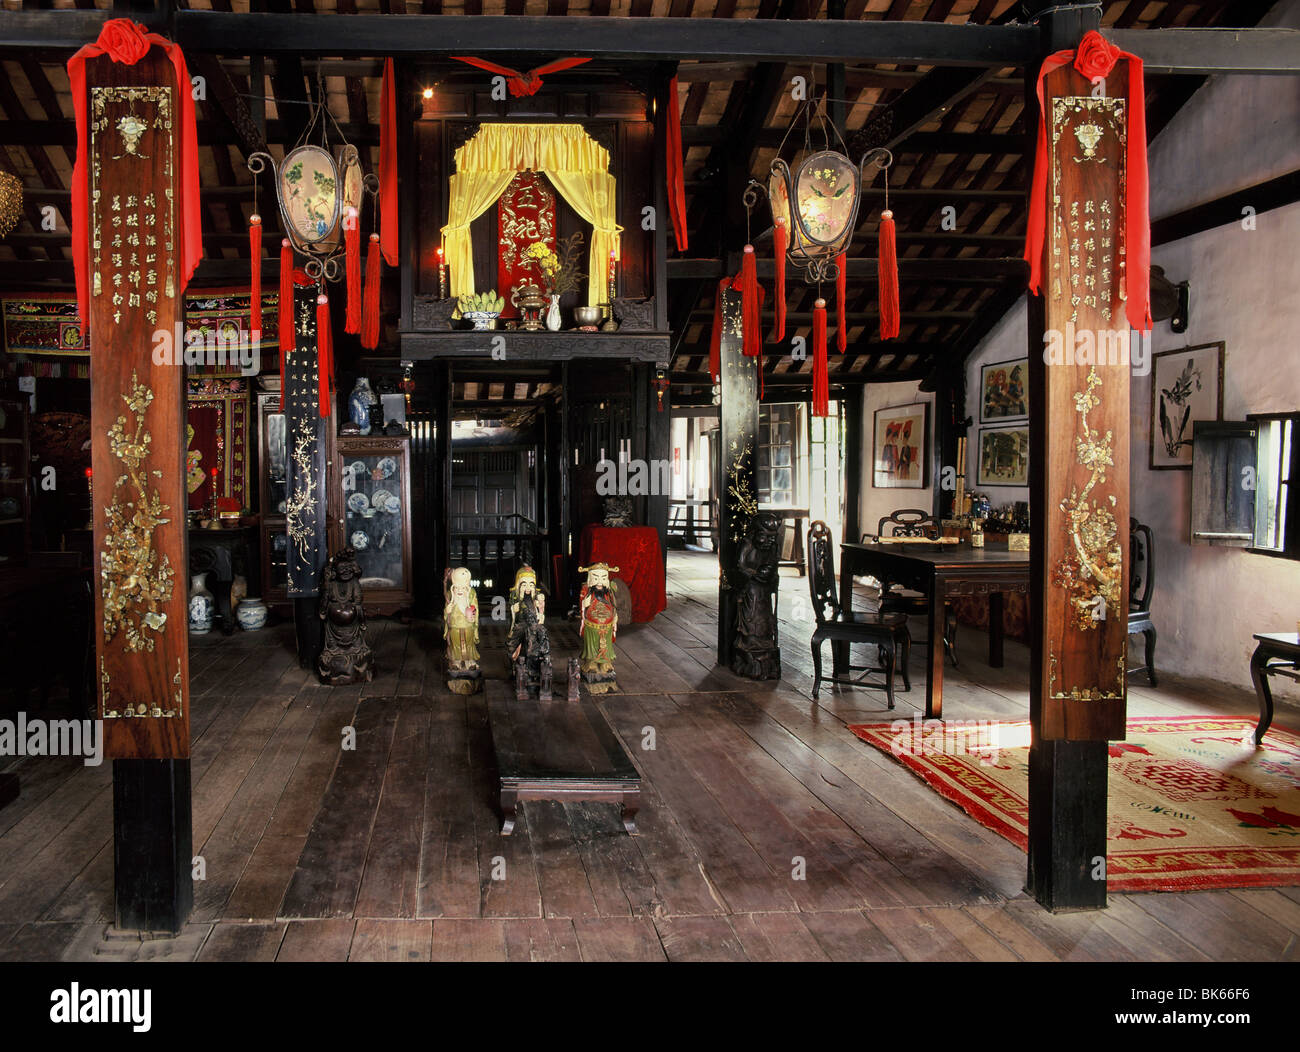 Altar in the sitting room of a Chinese house built in 1780, Phung Hung House, Hoi An, Vietnam, Indochina, Southeast - Stock Image